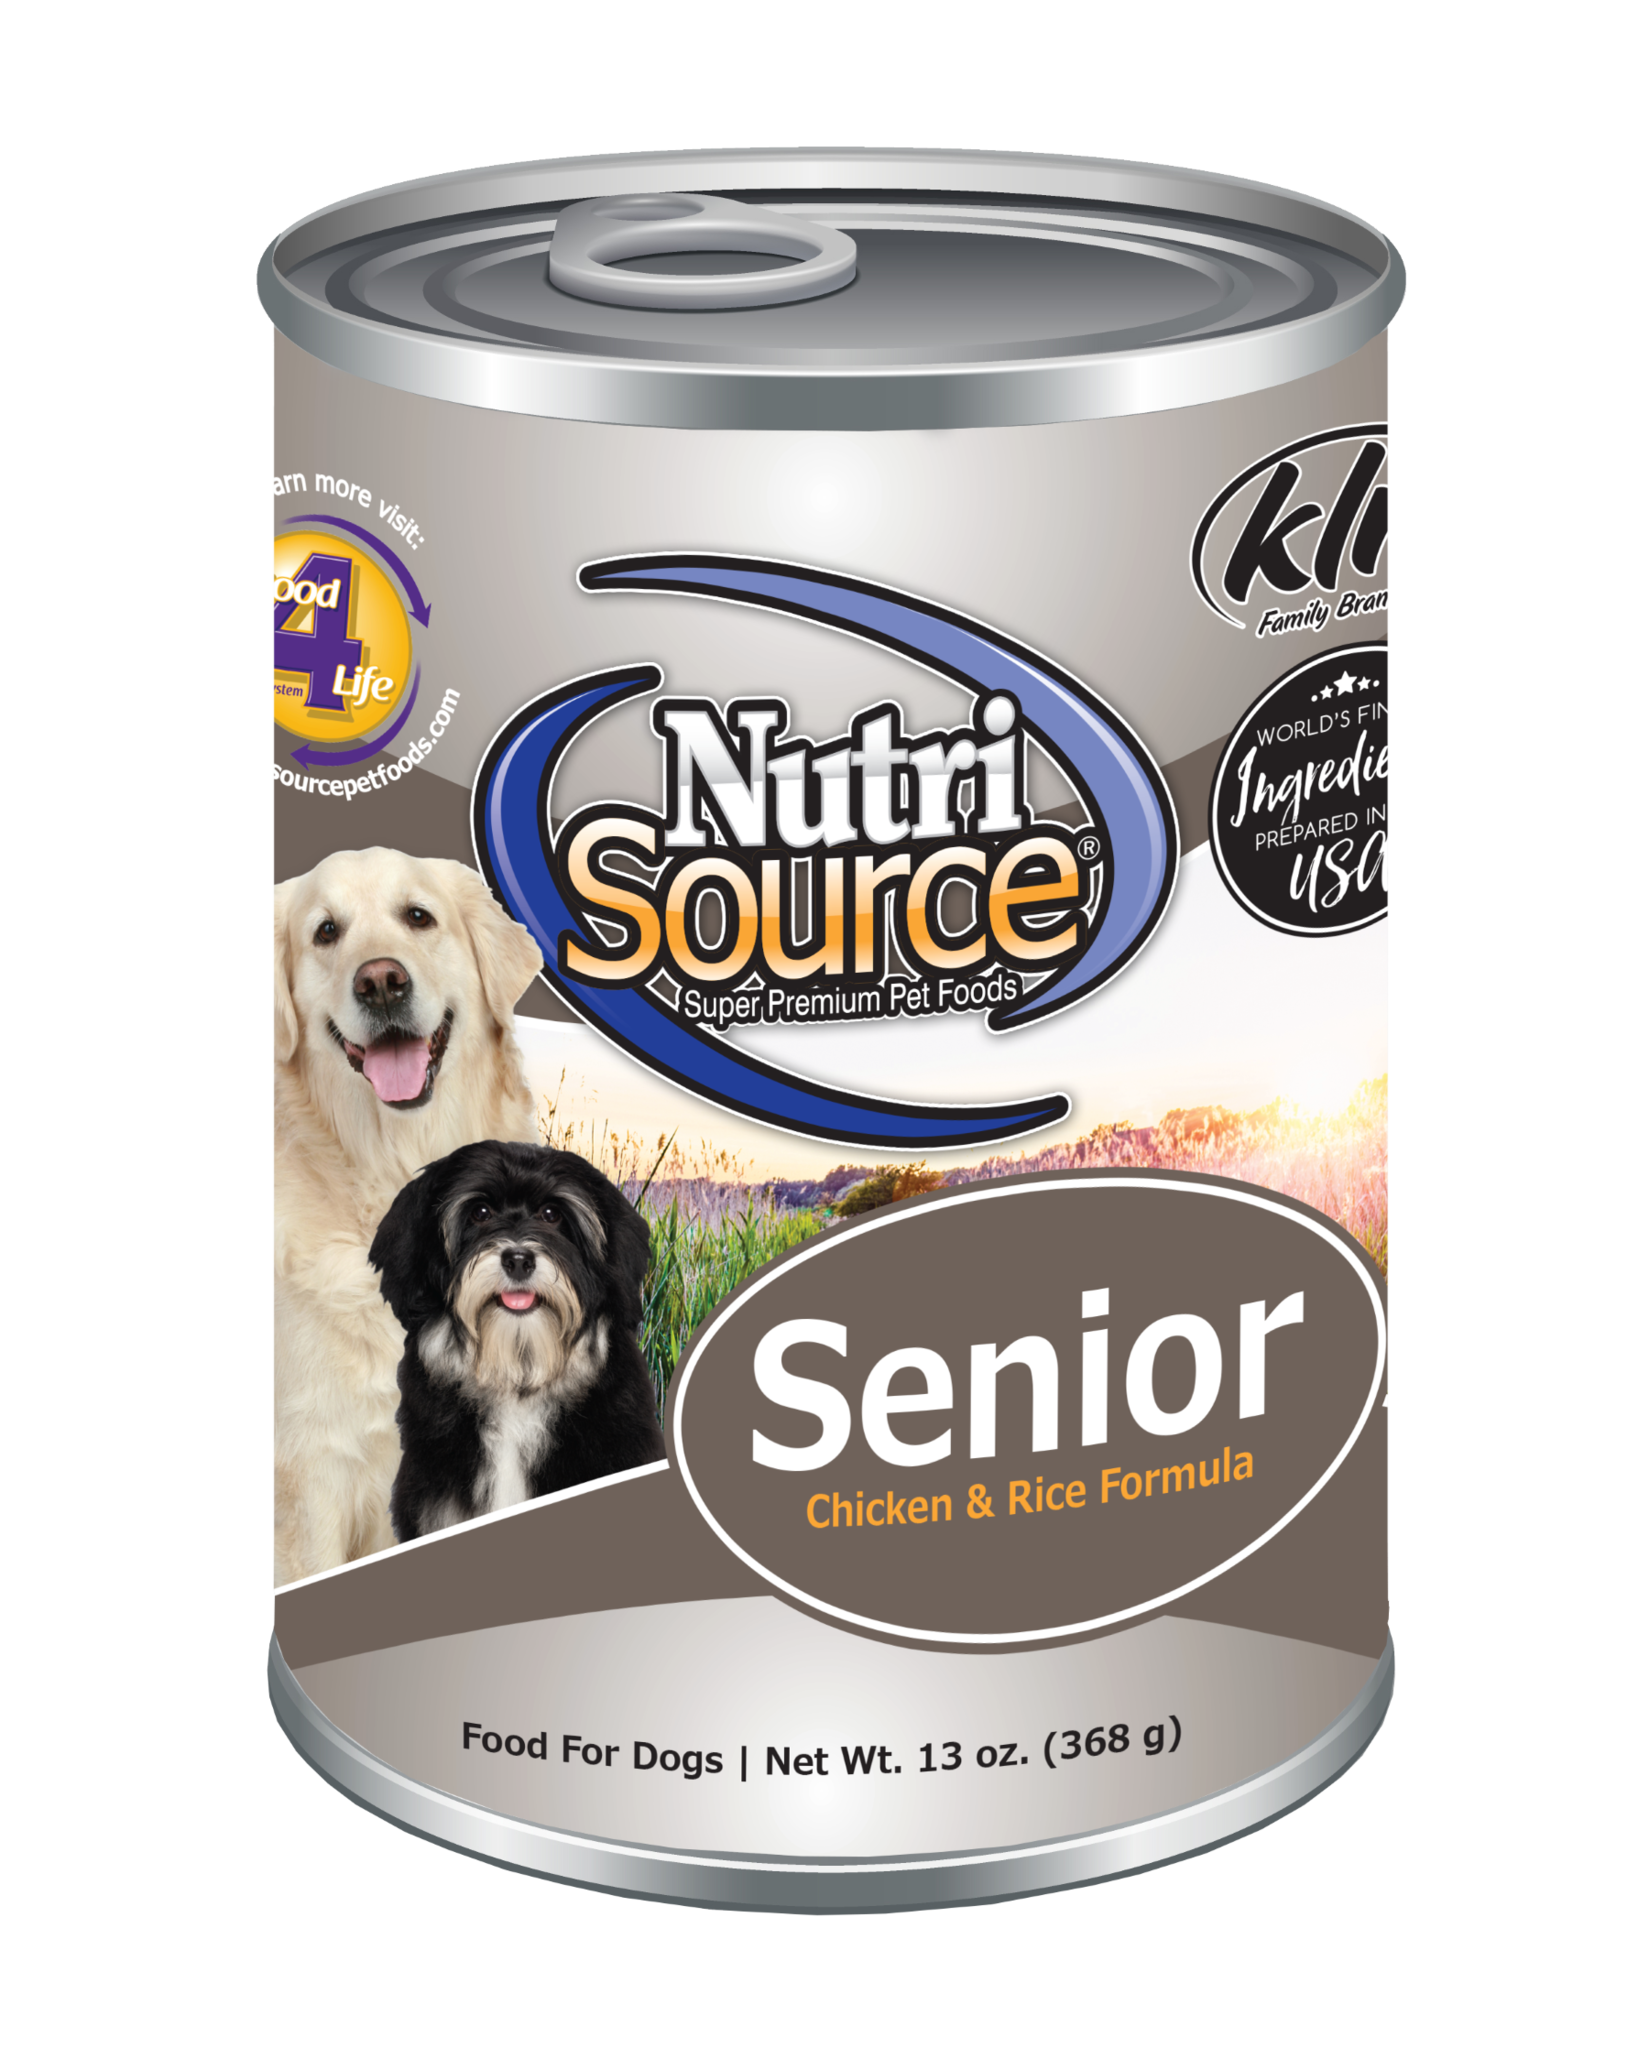 NutriSource NutriSource Senior Chicken & Rice Wet Dog Food 13oz